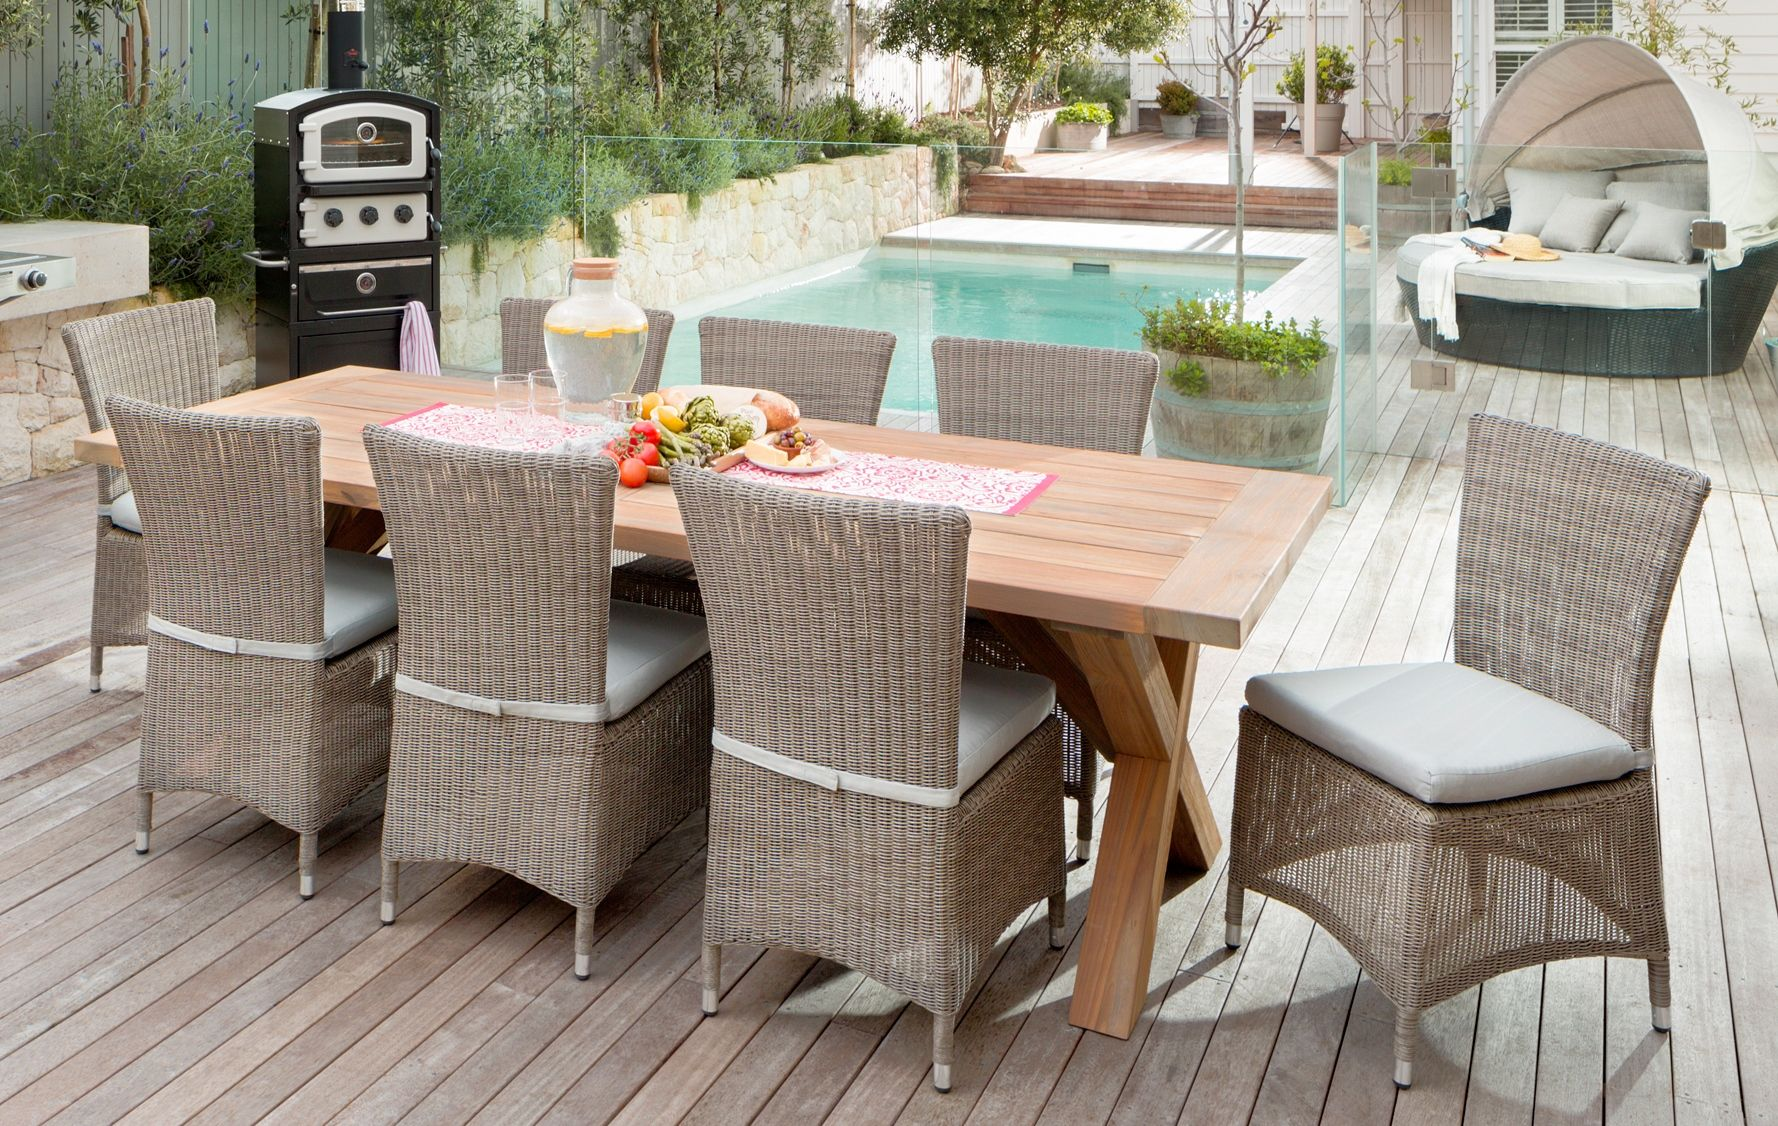 European Elegance - Outdoor Inspiration package at Bunnings ...